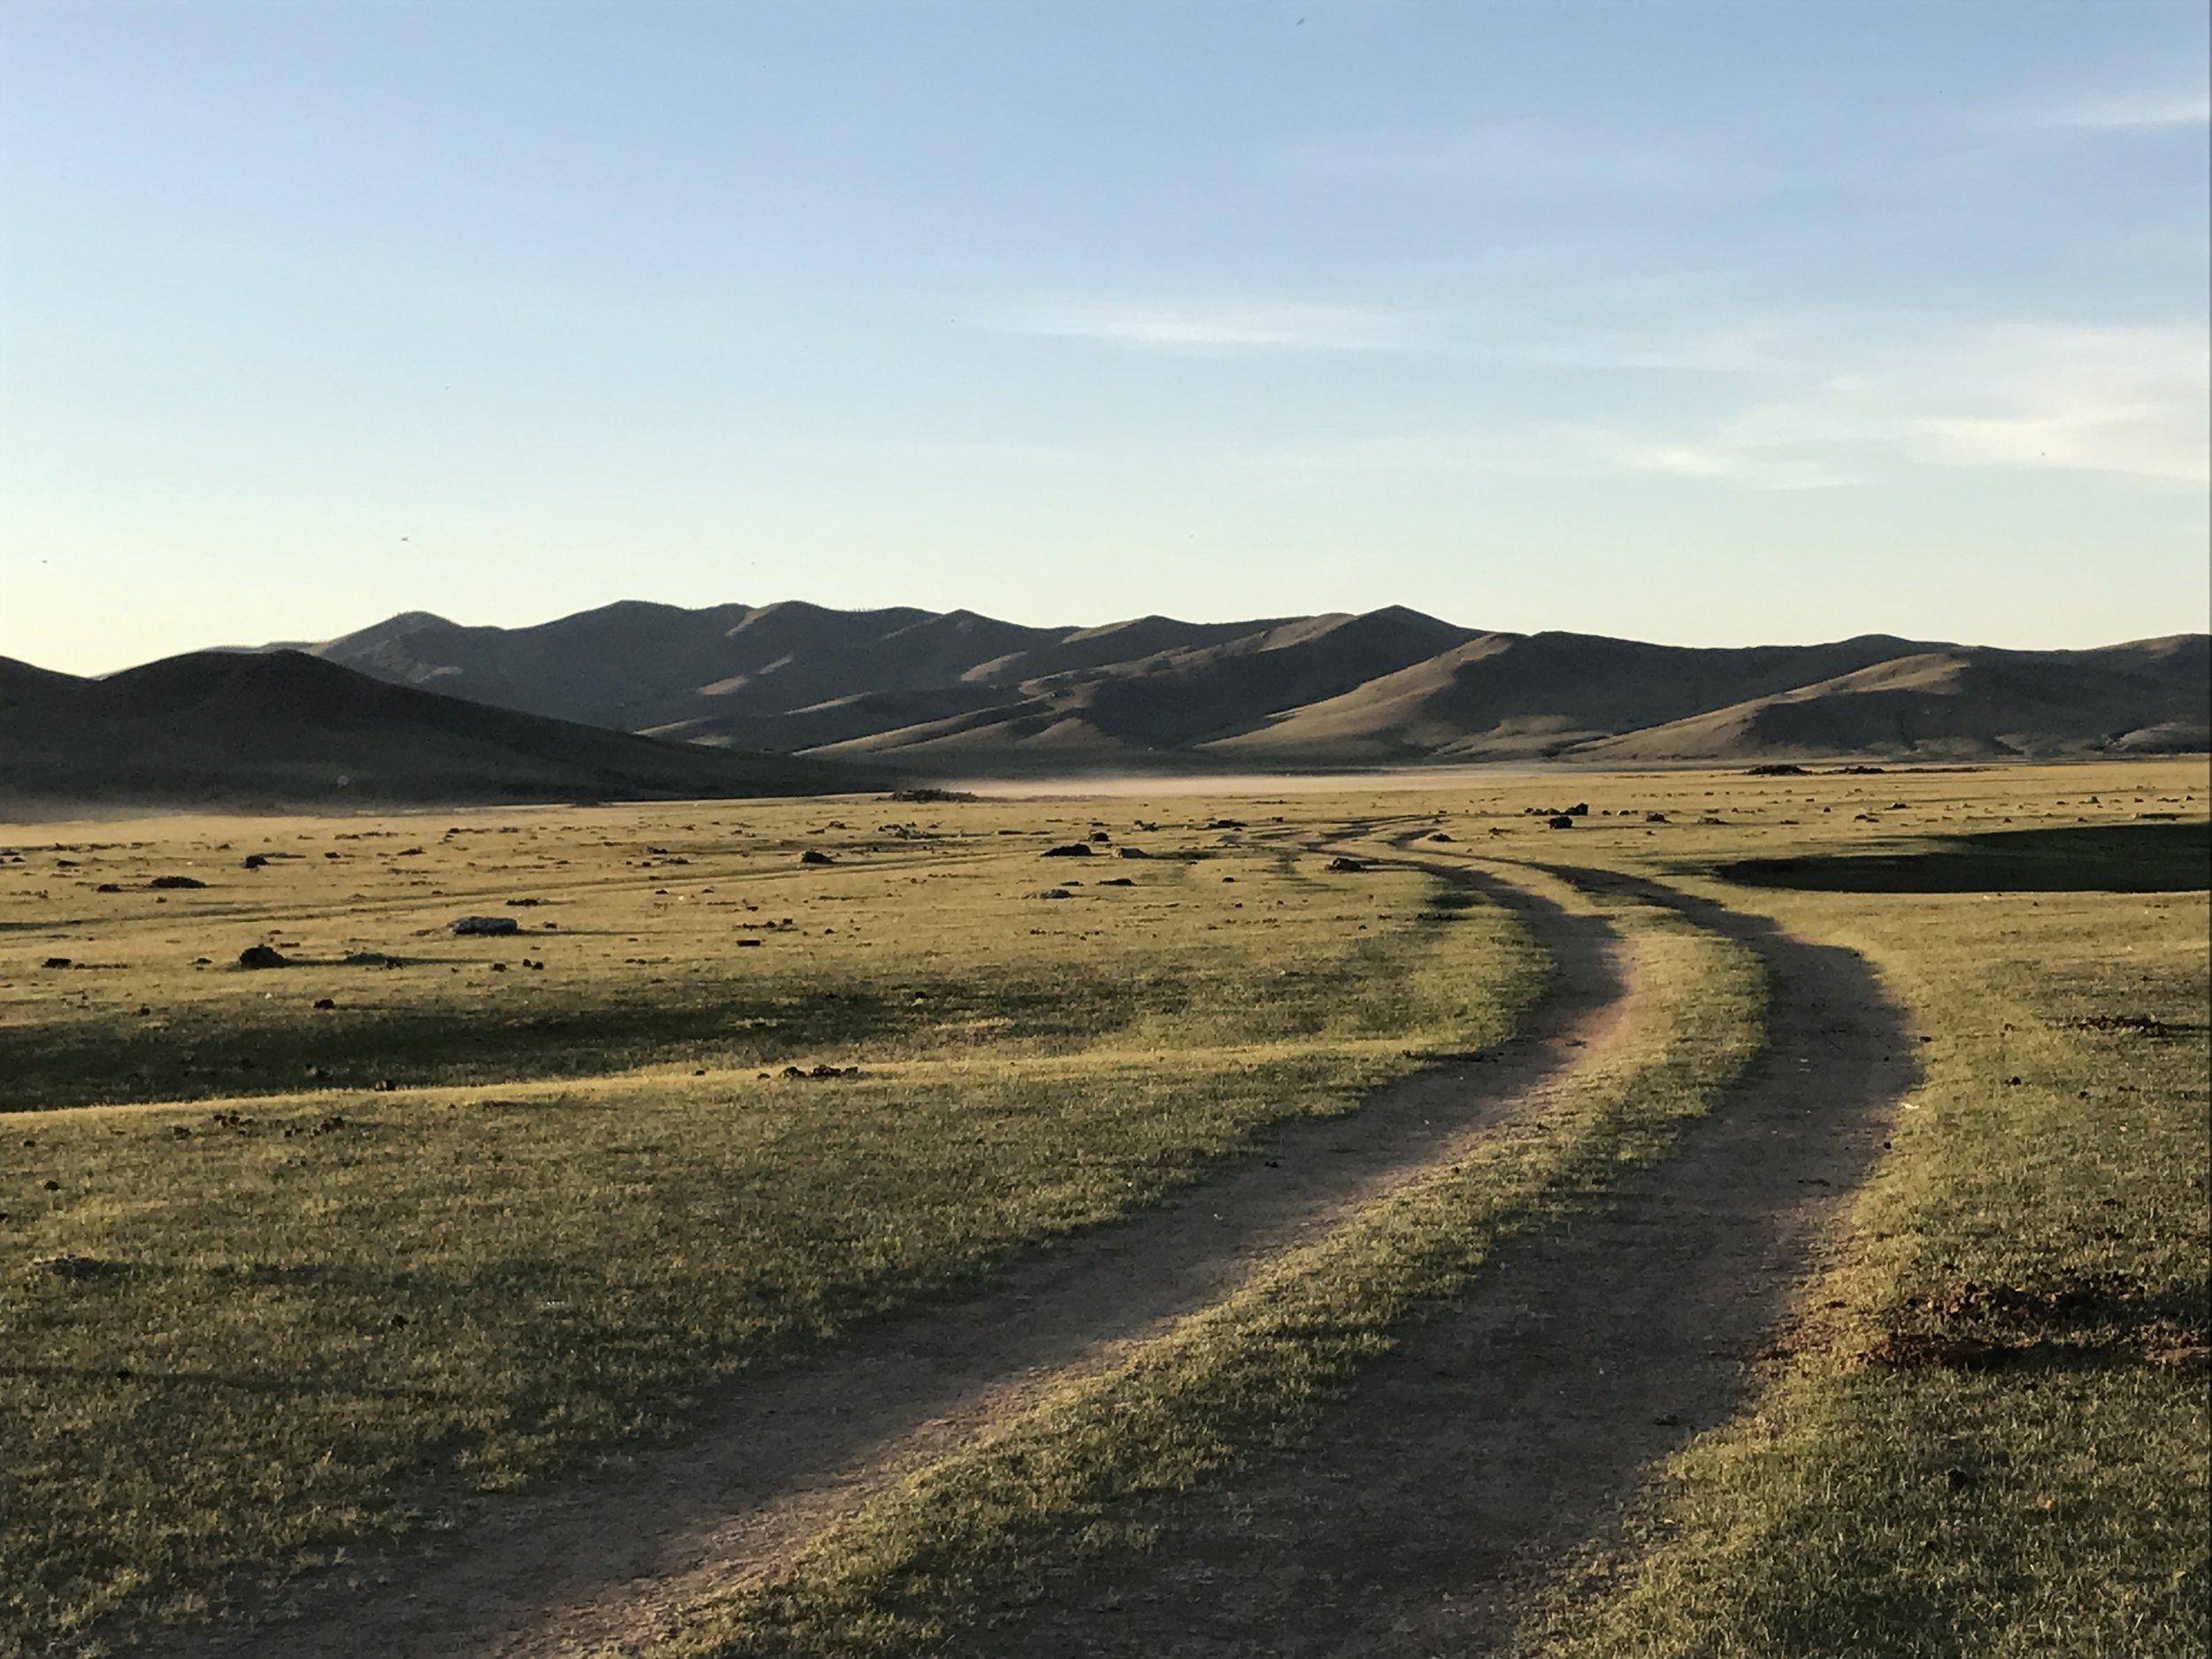 Sunset after a warm day on the steppe. We drove on a road like this through a volcanic rock field for two hours.